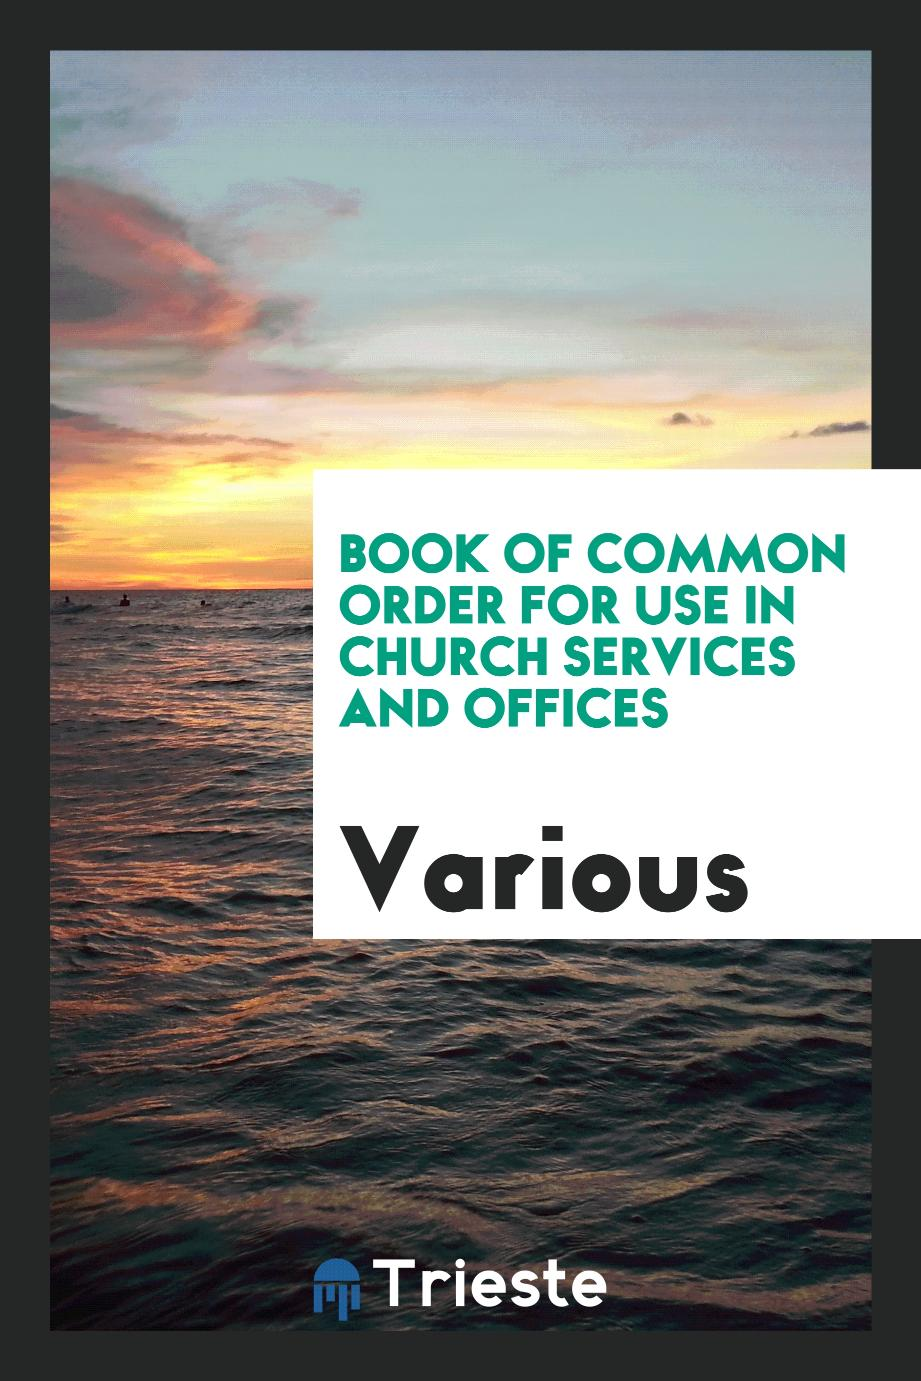 Book of common order for use in Church services and offices